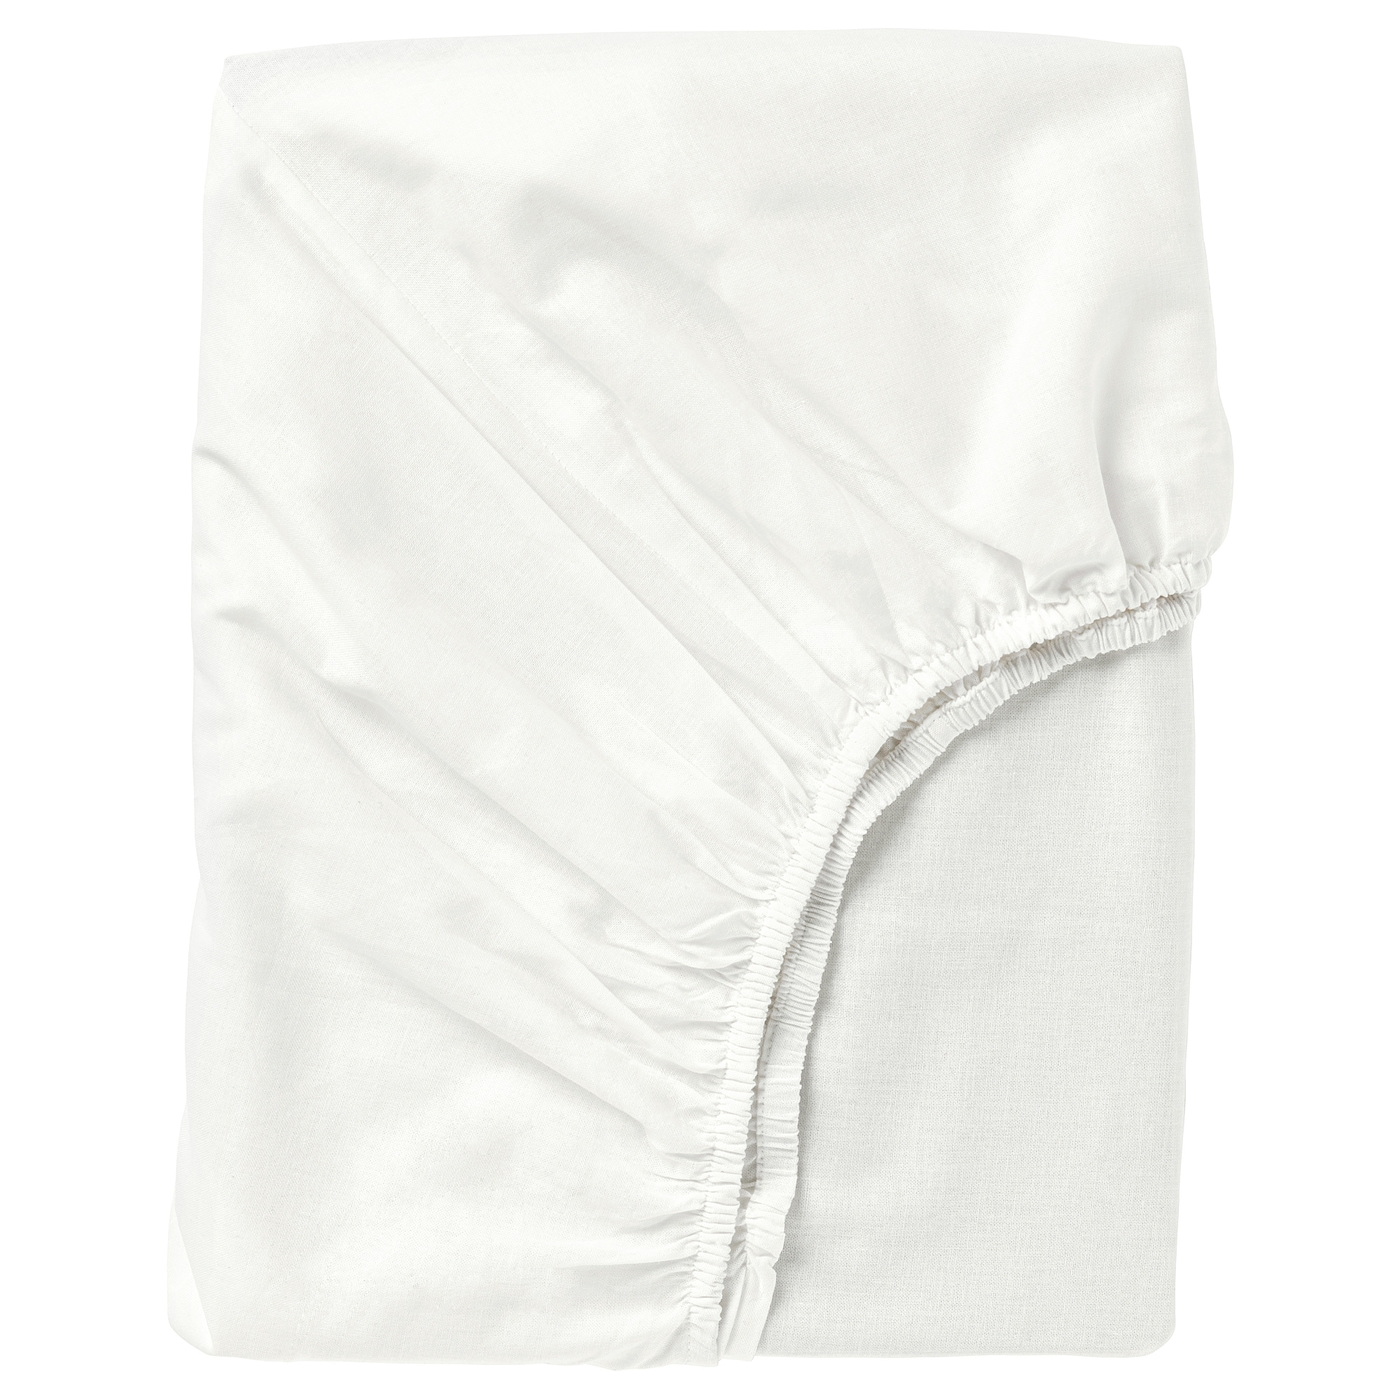 IKEA FÄRGMÅRA fitted sheet Made in 100% cotton - a natural and durable material.